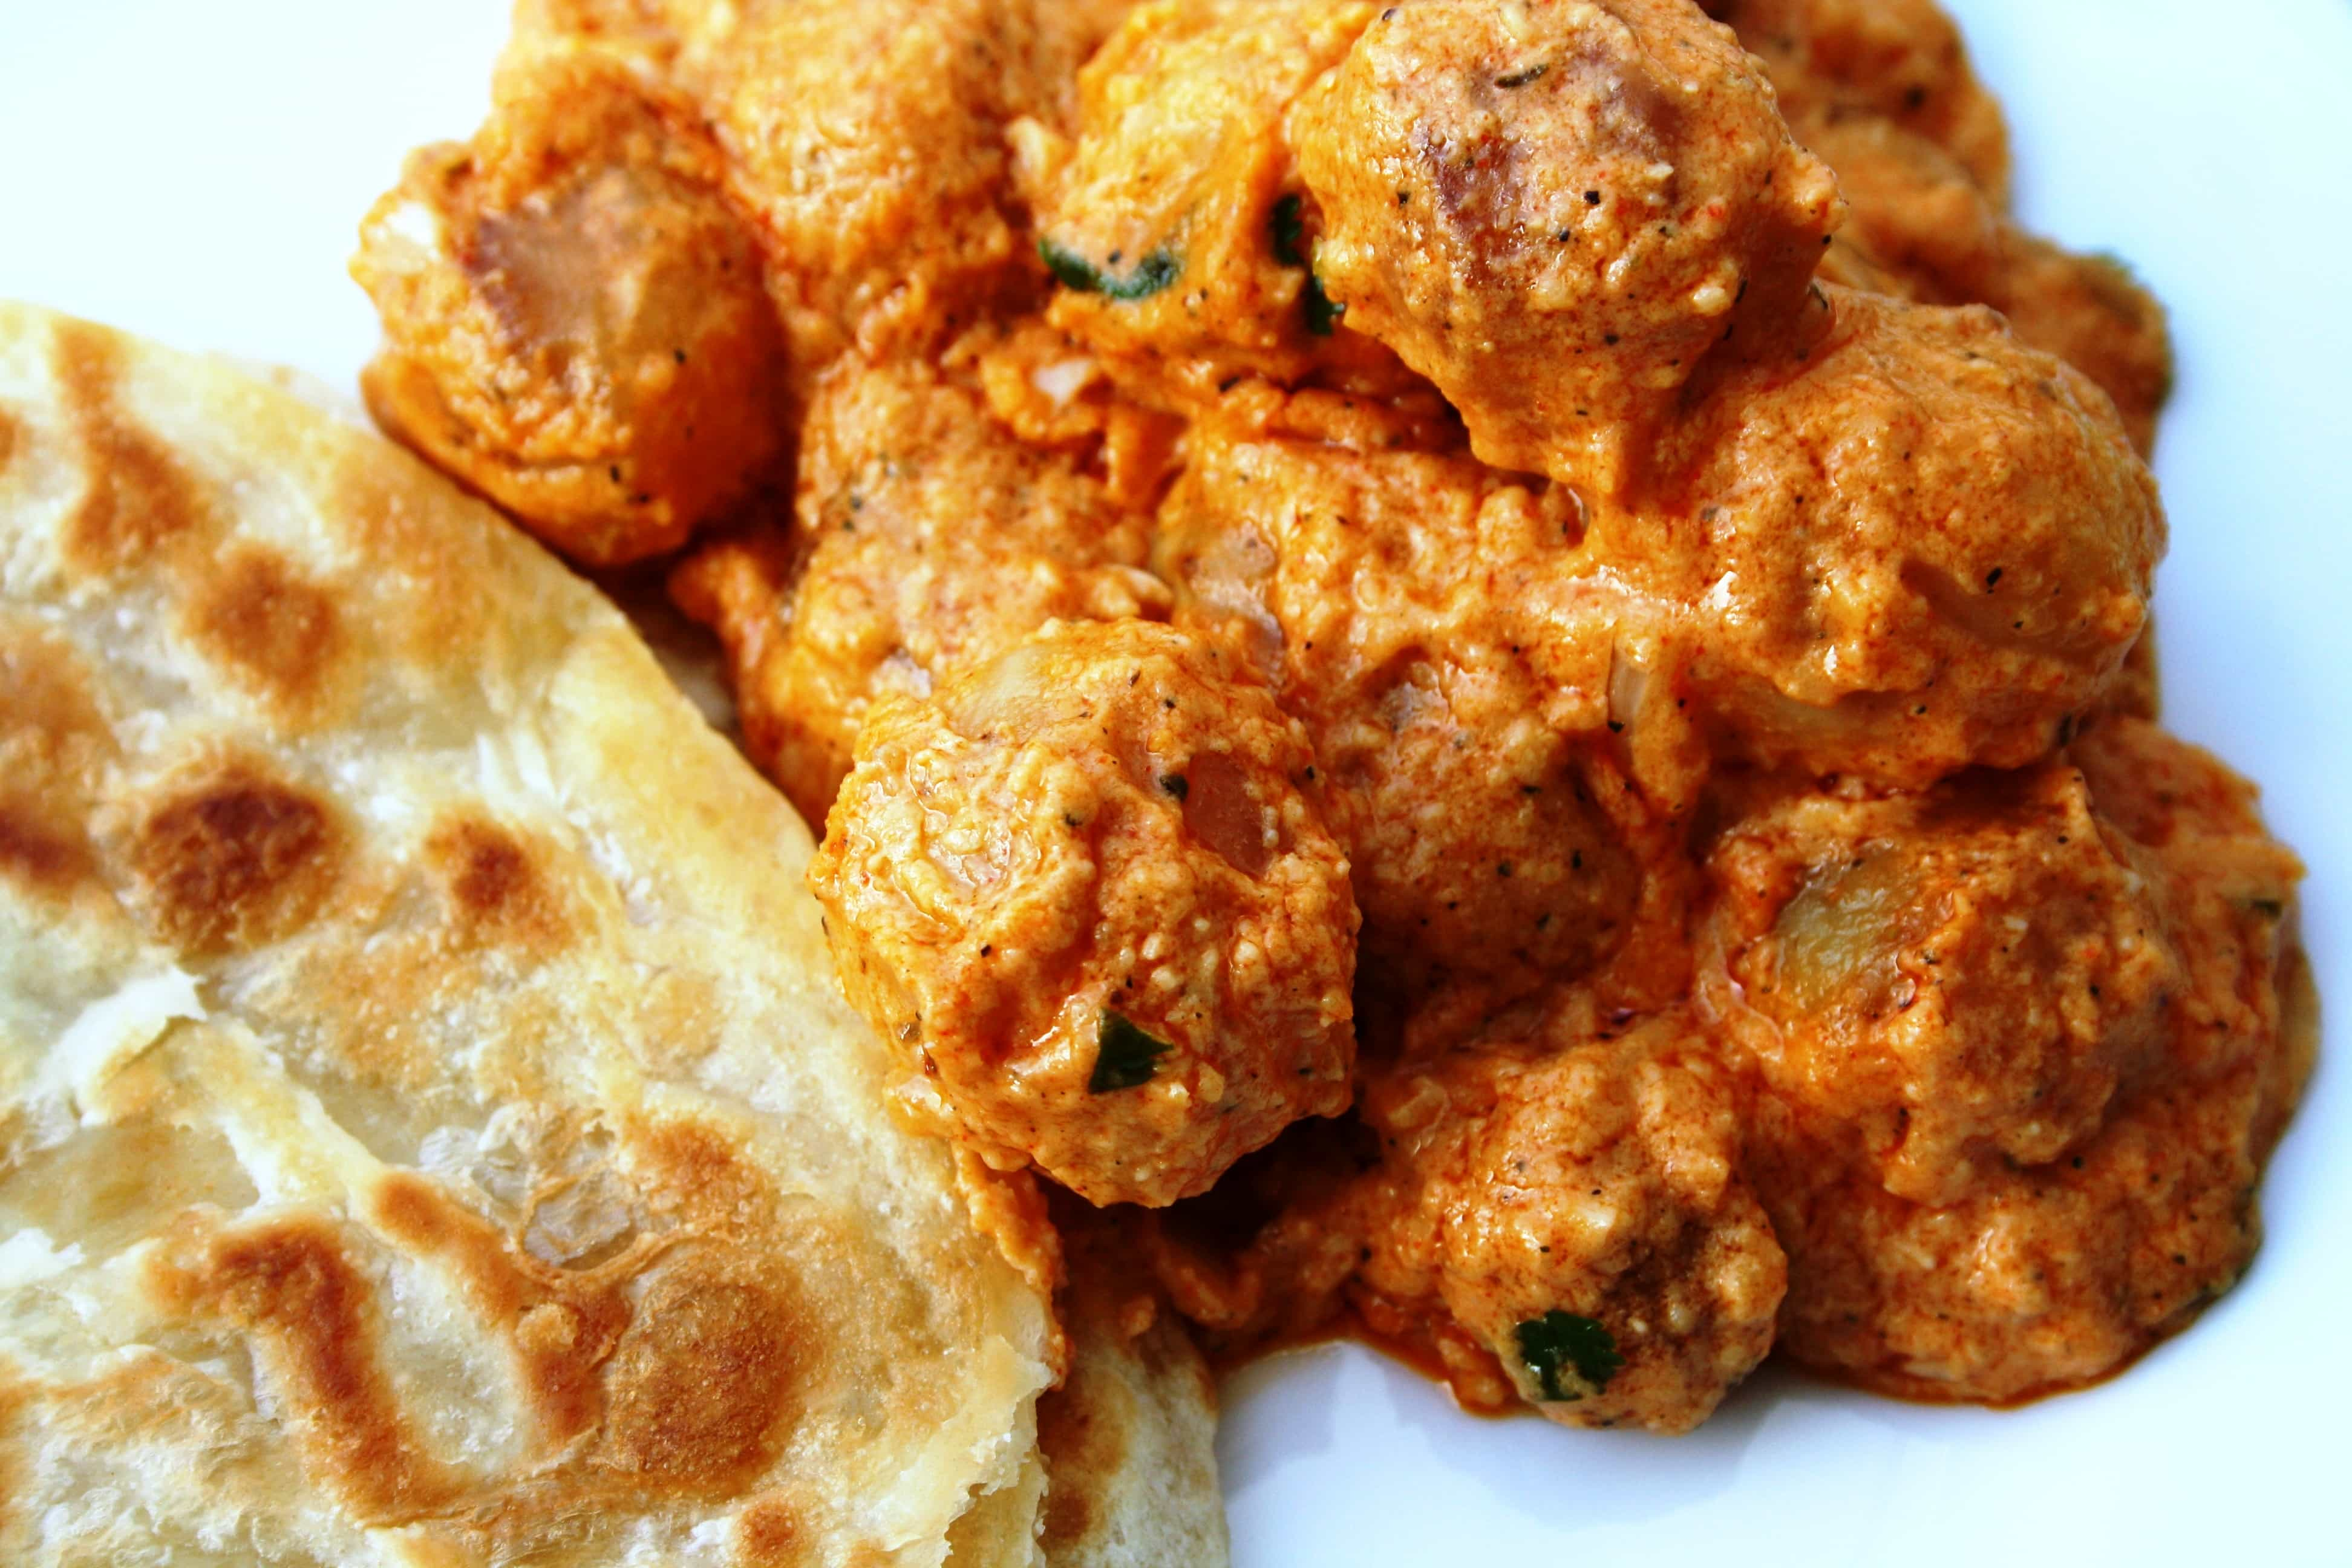 Kashmiri Dum Aloo- Fried potatoes cooked in a rich spicy curry